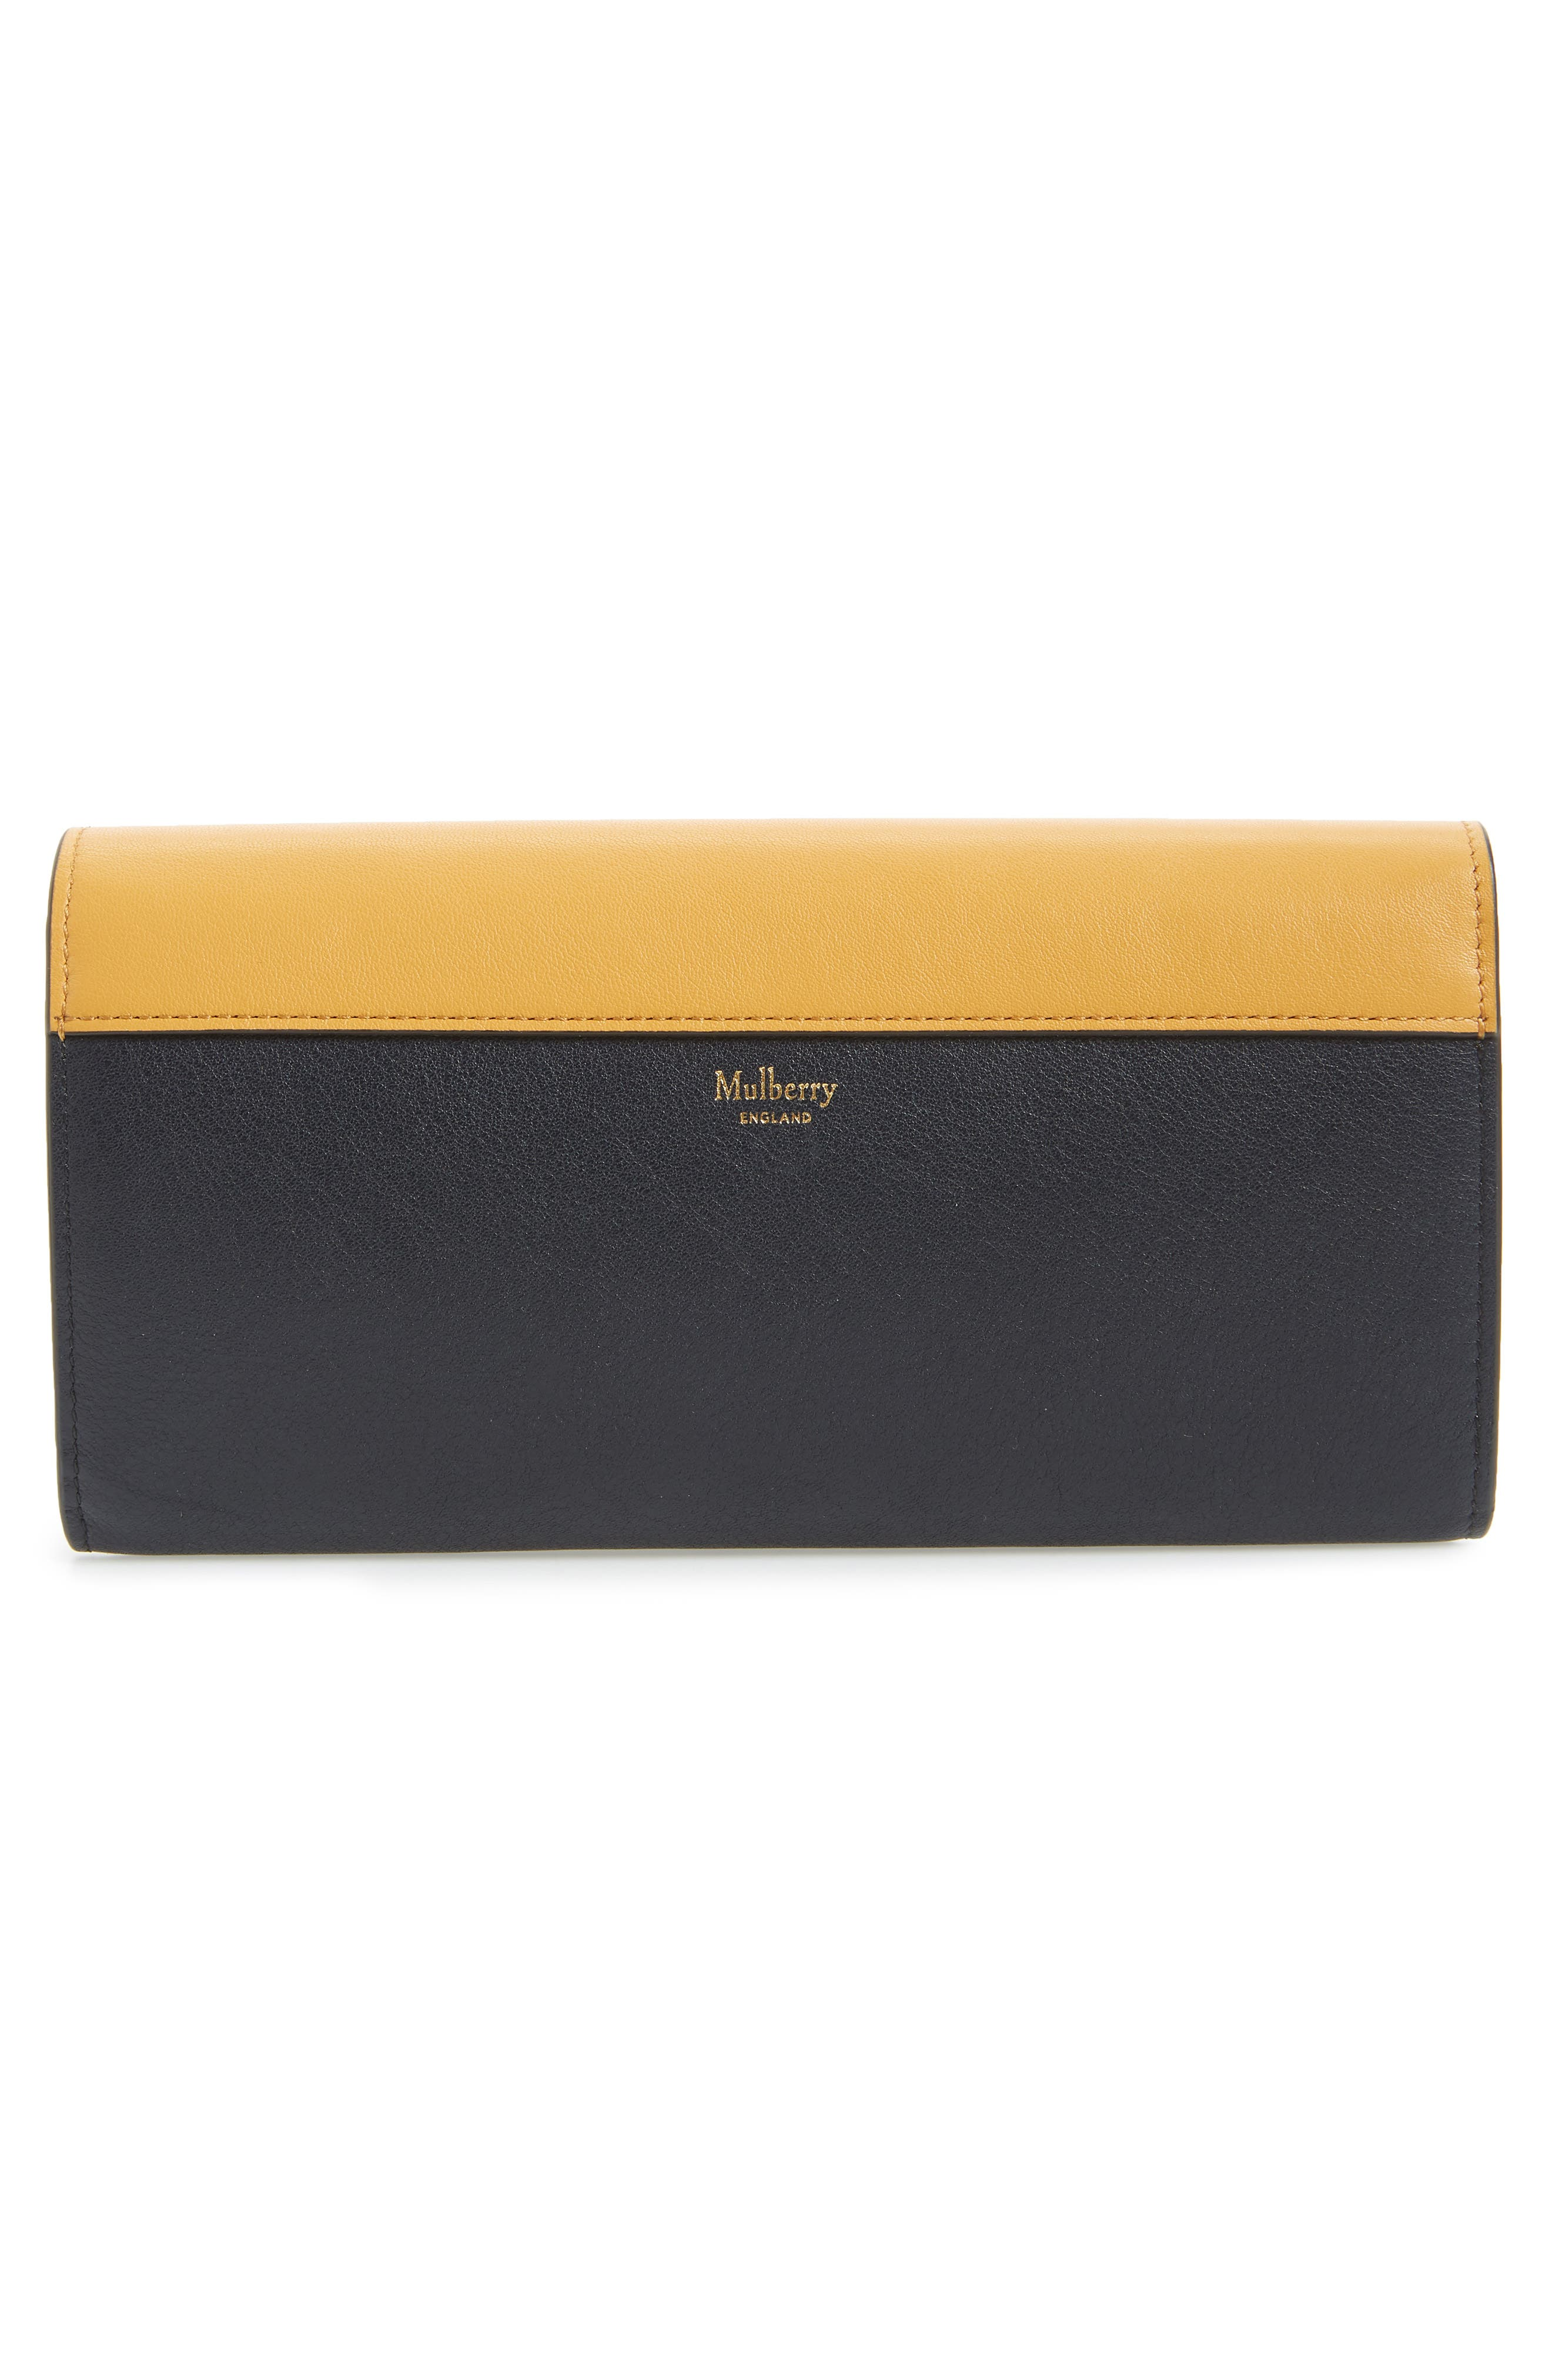 MULBERRY, Mulberrry Harlow Calfskin Leather & Genuine Snakeskin Wallet, Alternate thumbnail 3, color, MAIZE YELLOW/ MIDNIGHT